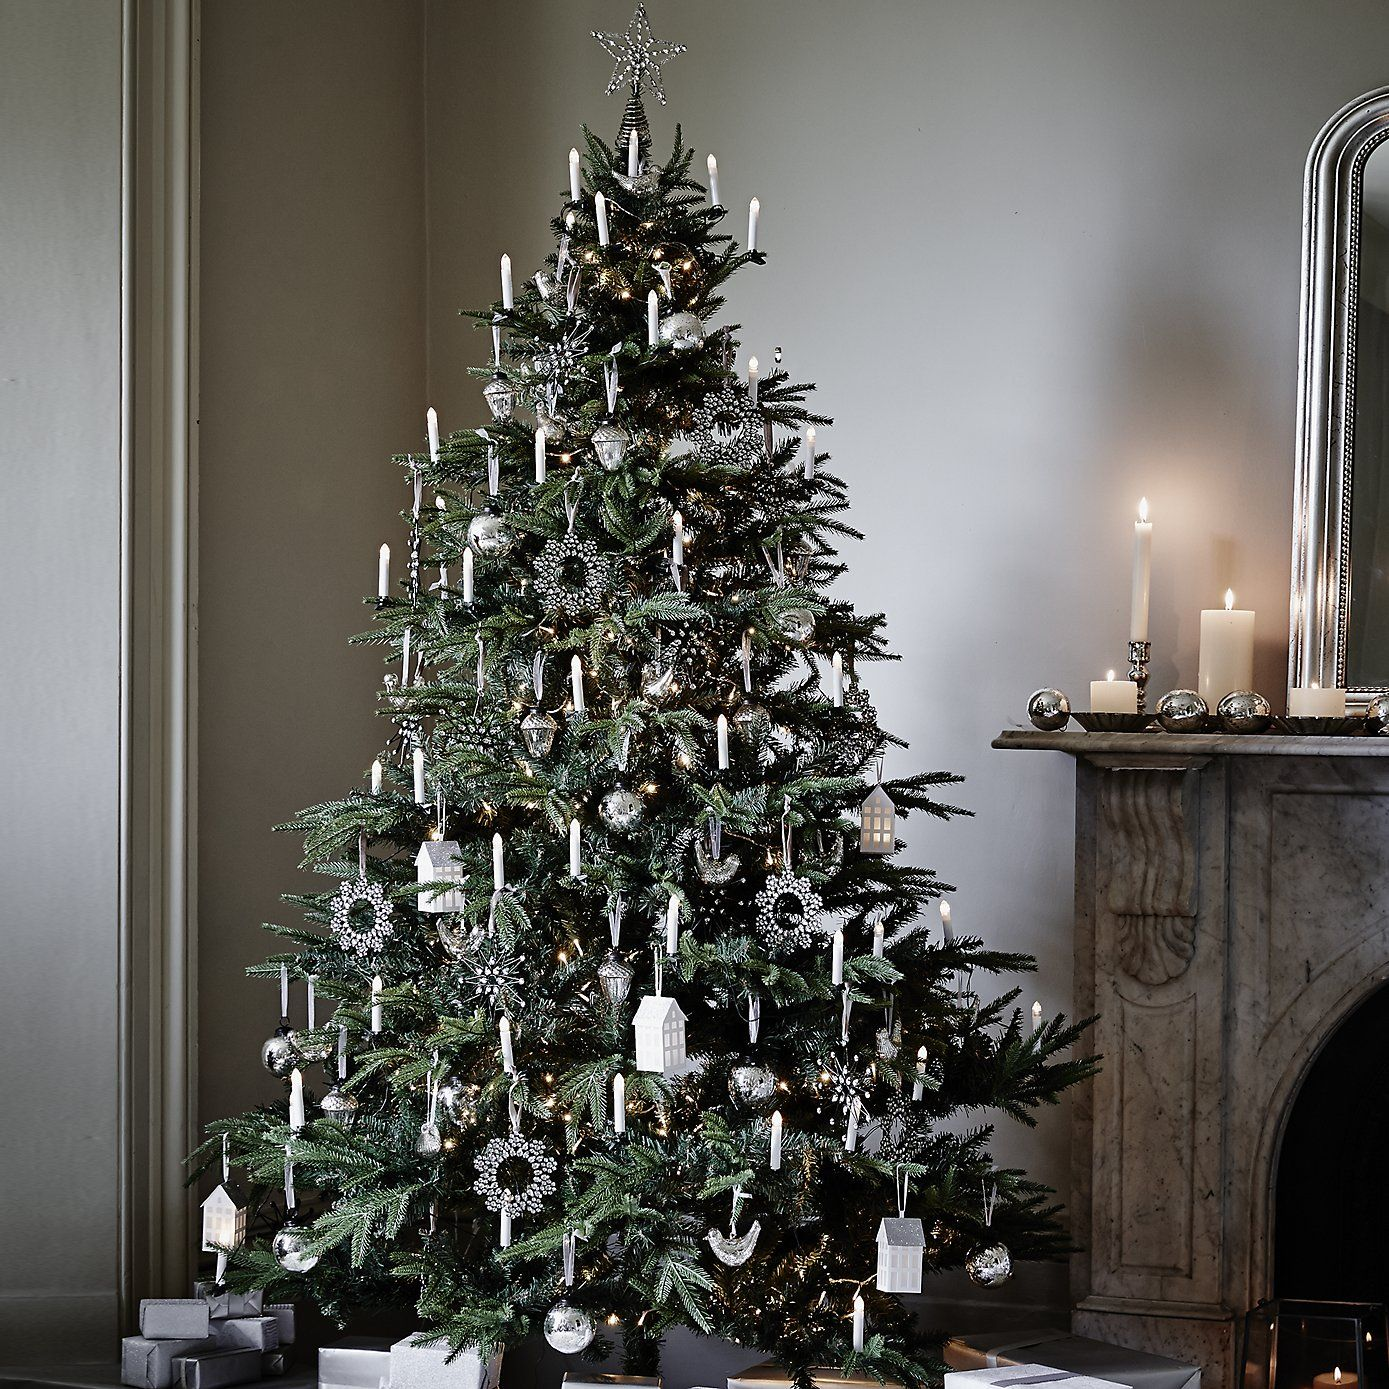 Frosted Christmas Tree Decorations  Thwwhitecompany White Silver Decorations Christmas Festive Living Room Red Online